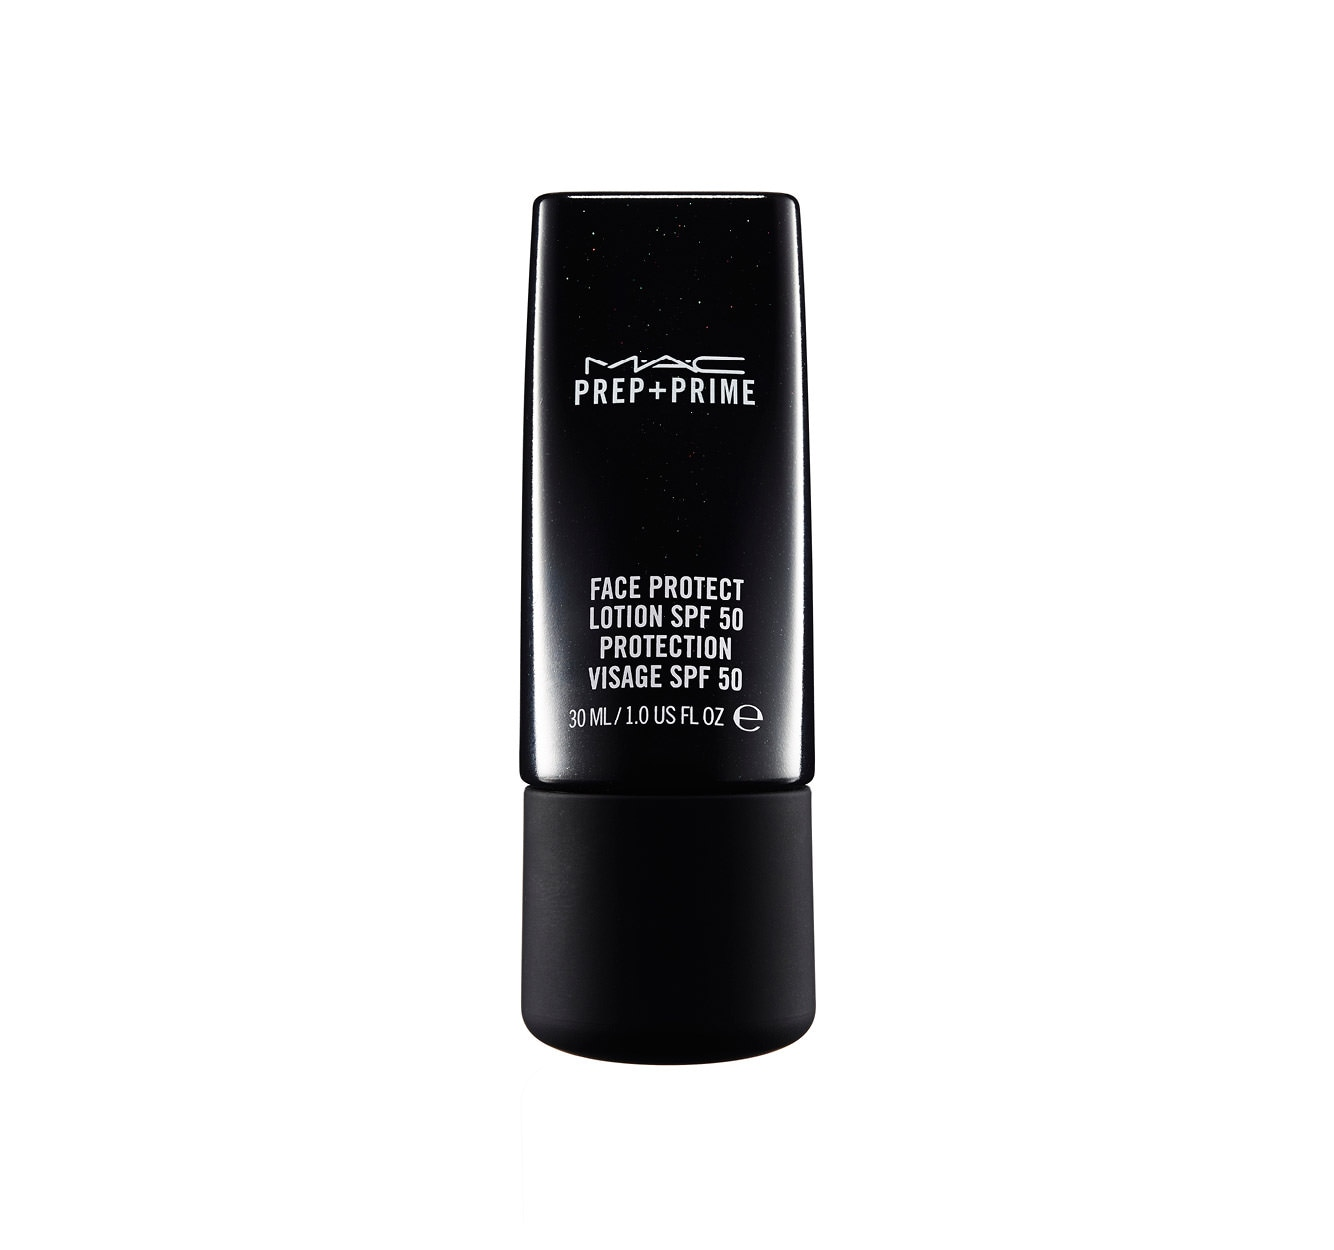 related product products/images/MAC-PrepPrimeFaceProtectLotionSPF50.jpg